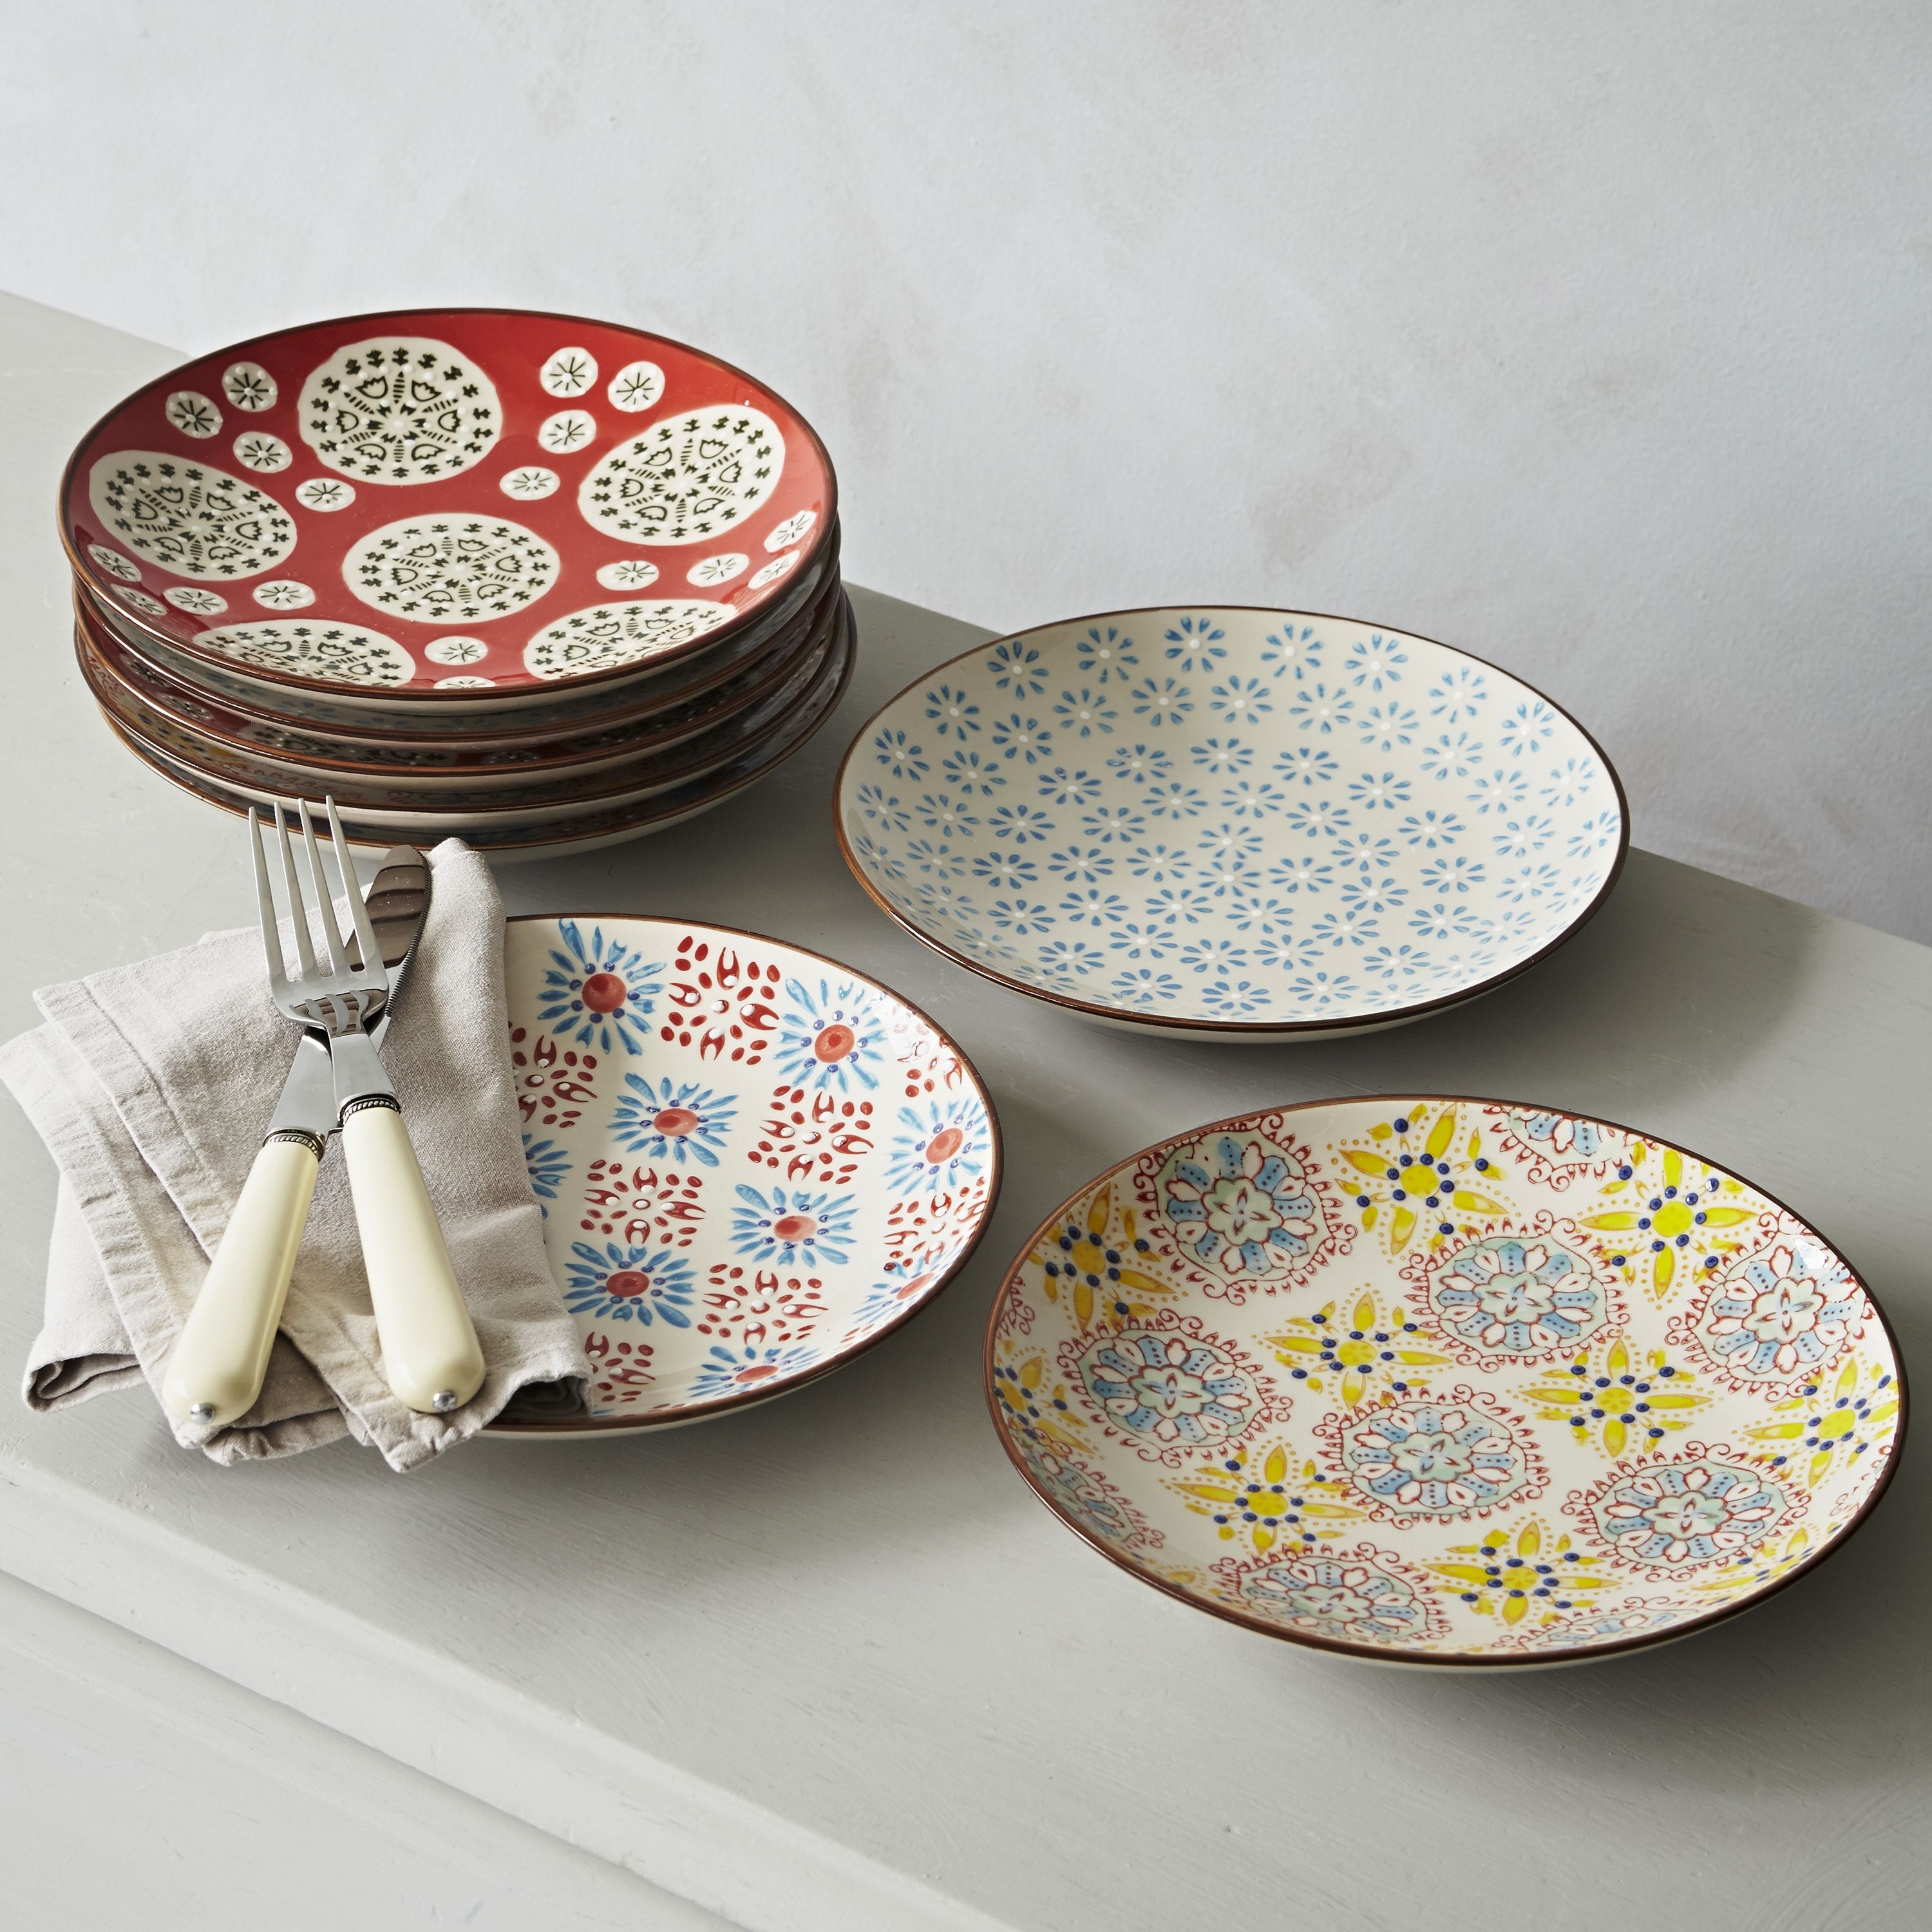 mix and match these lovely boho side plates in with your existing  - mix and match these lovely boho side plates in with your existing dinnerplates their